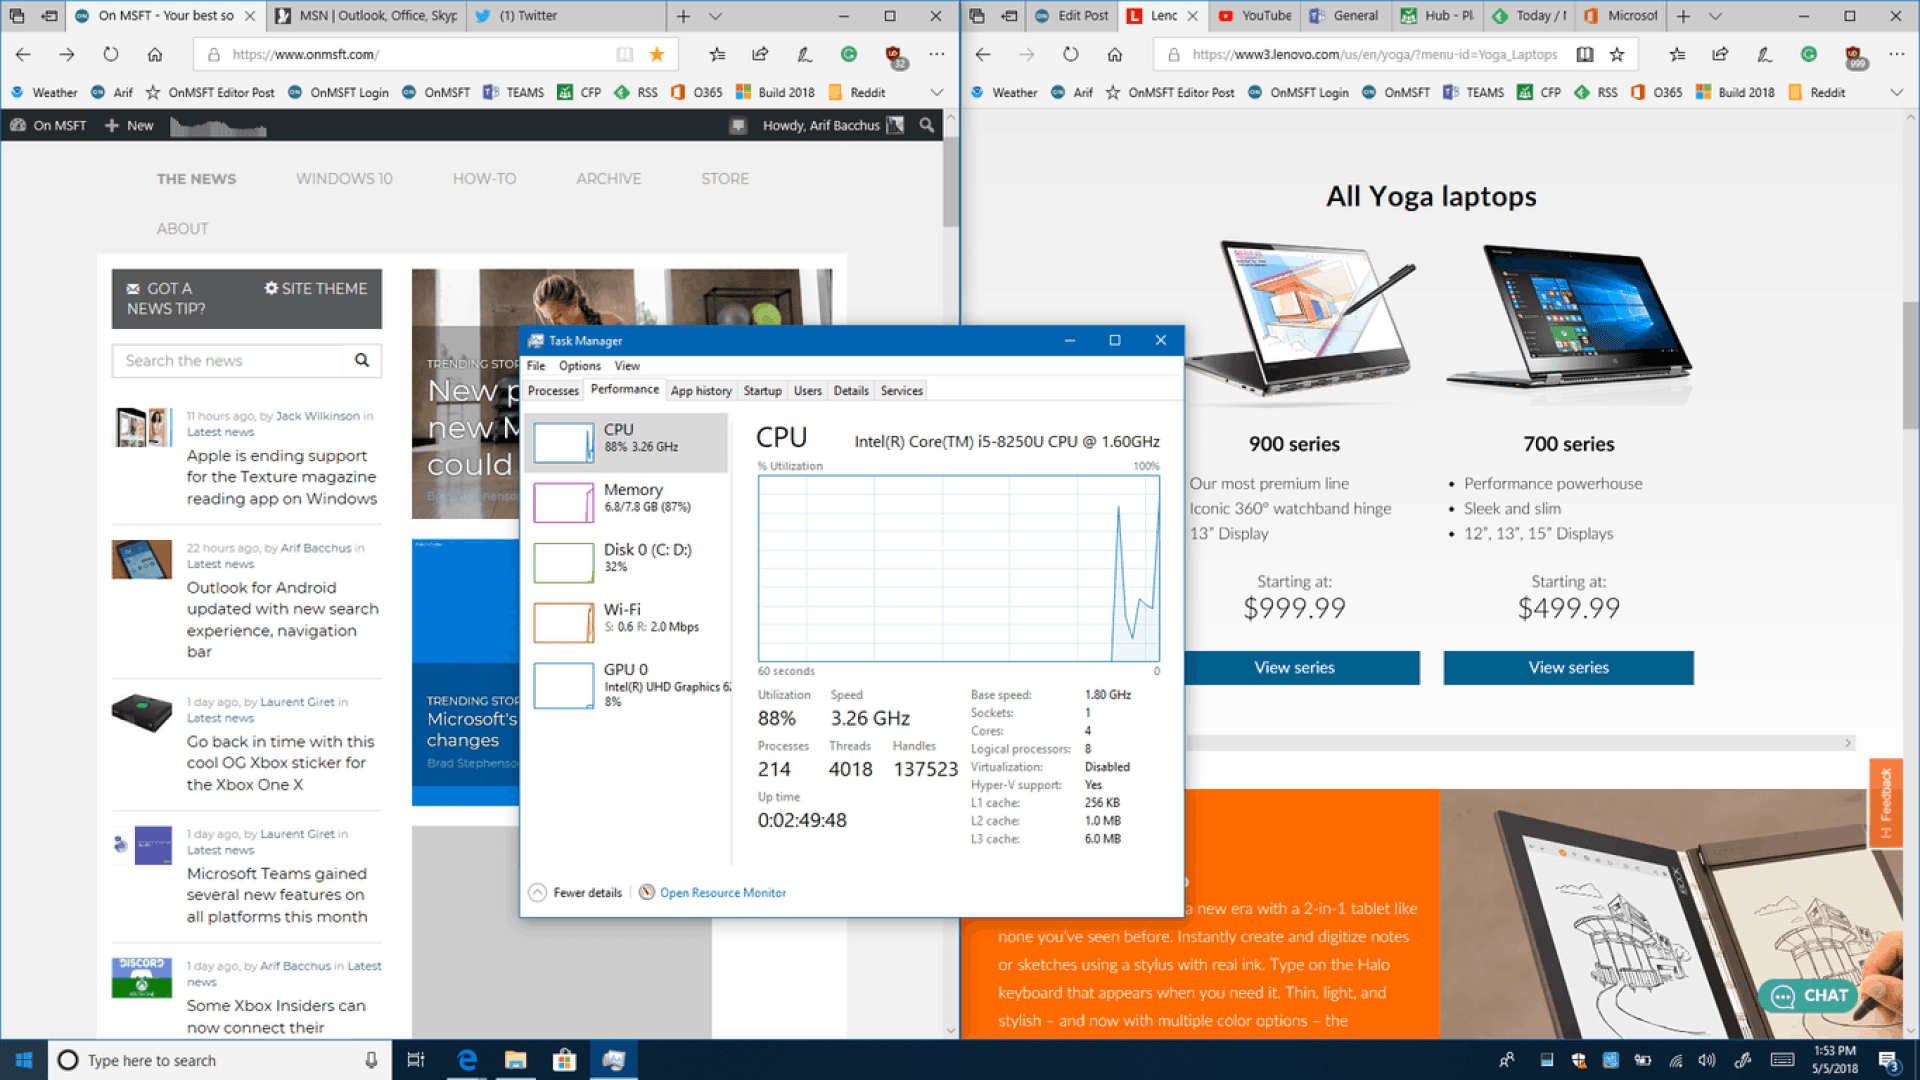 Lenovo Yoga 730 (13-inch:) Big power in a small but premium package